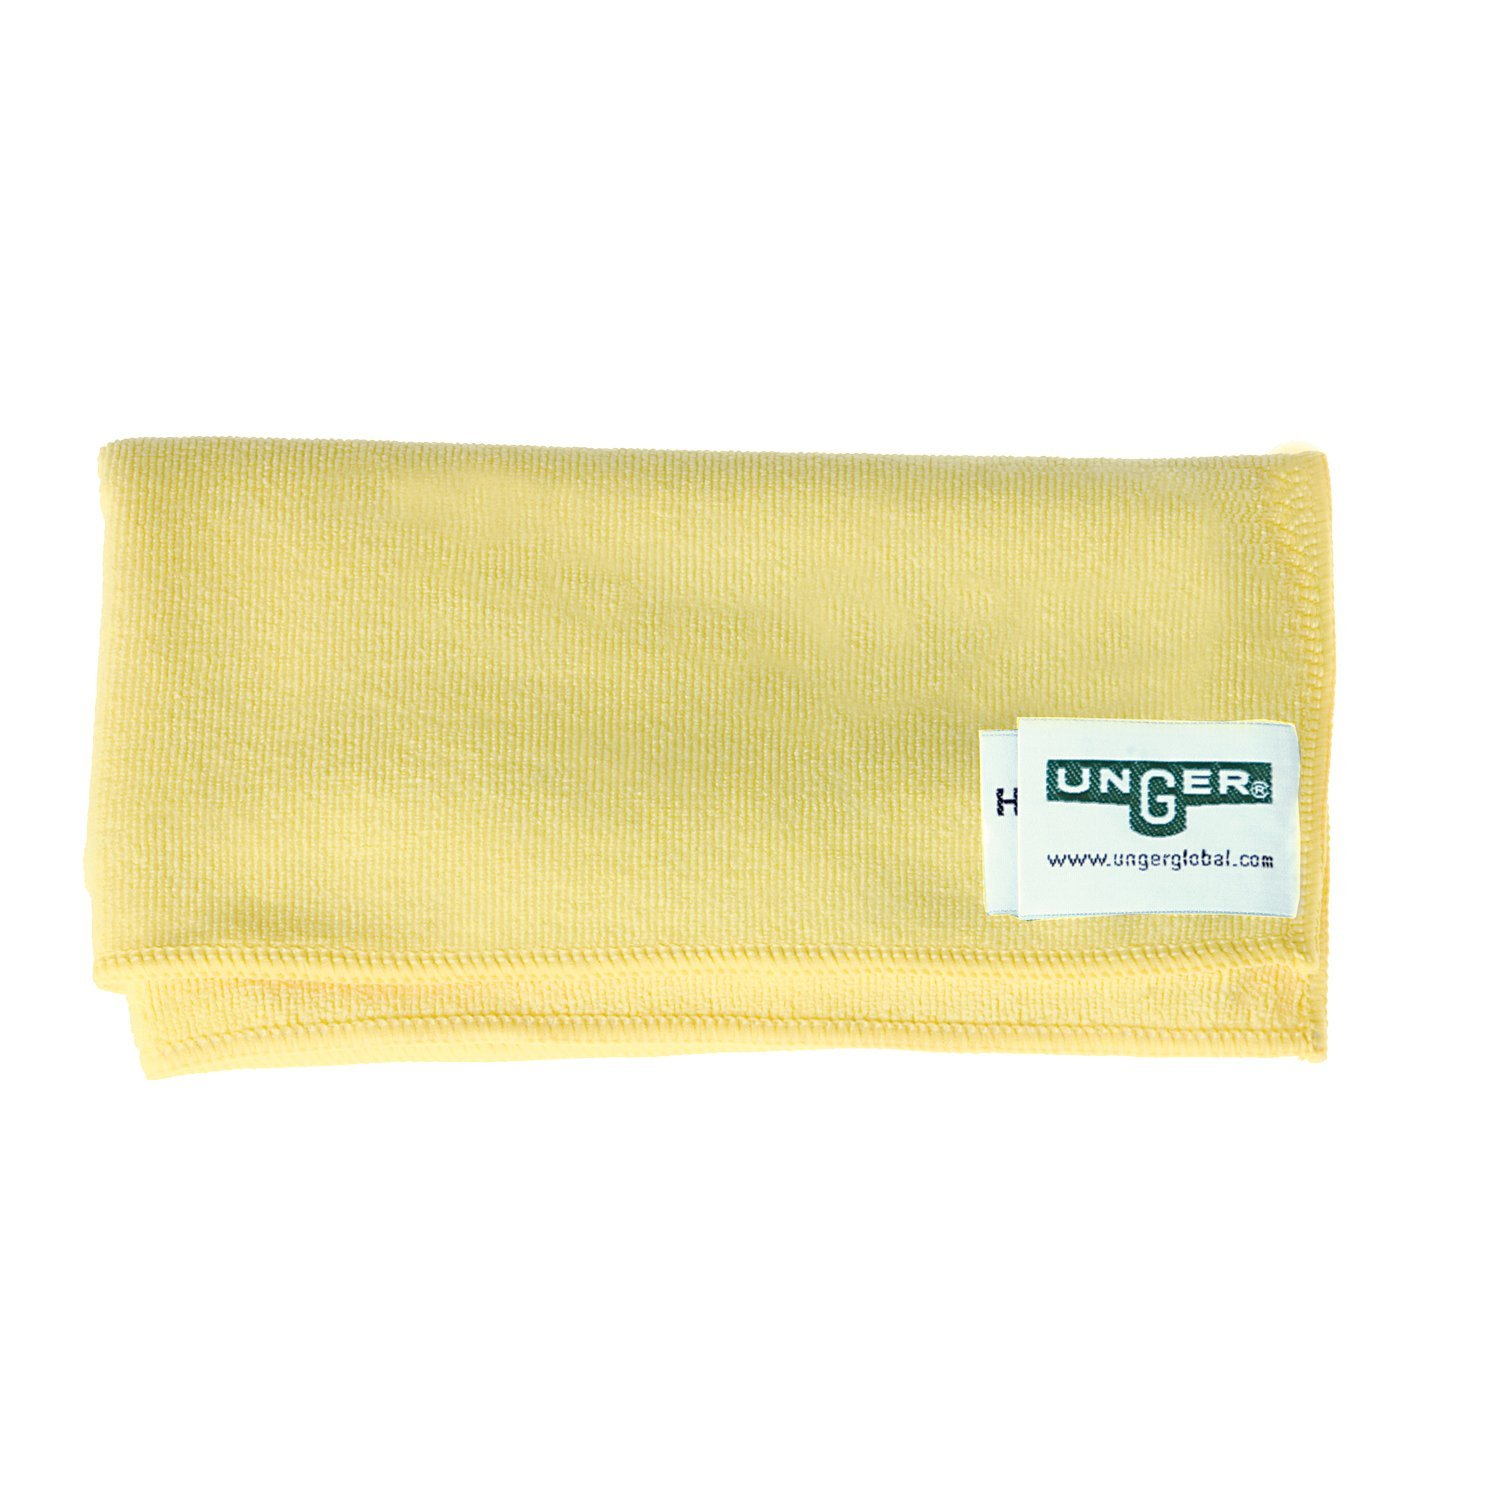 Unger MF40J SmartColor MicroWipe Heavy Duty Microfiber Cloth, 16'' Length x 15'' Width, Yellow (Case of 10)